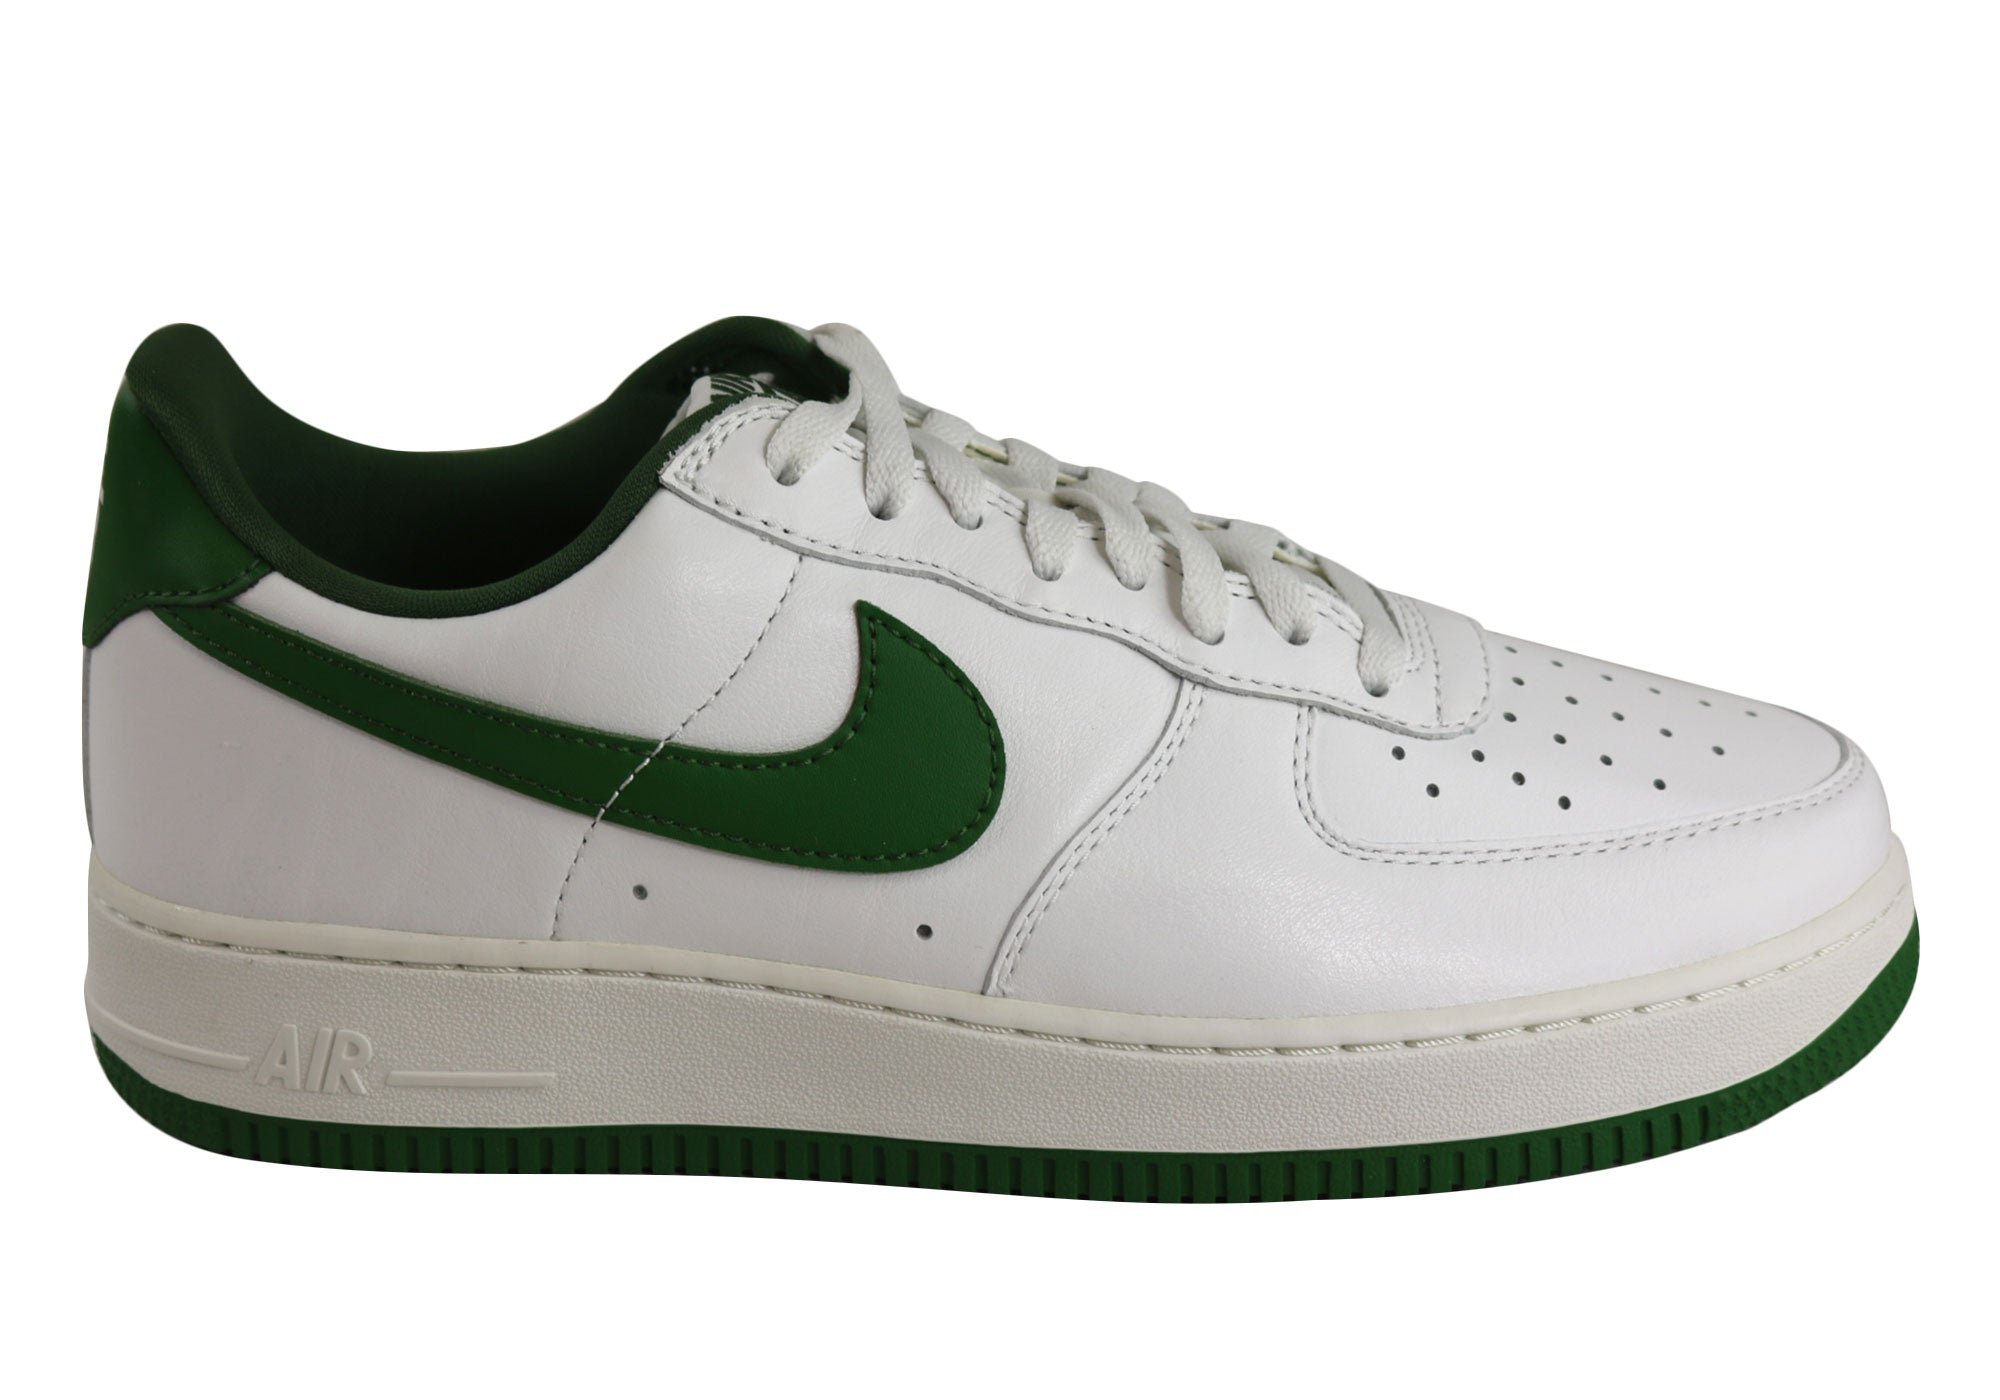 7a5da0250d6ae1 Home Nike Mens Air Force 1 Low Retro Casual Leather Shoes. White  ...